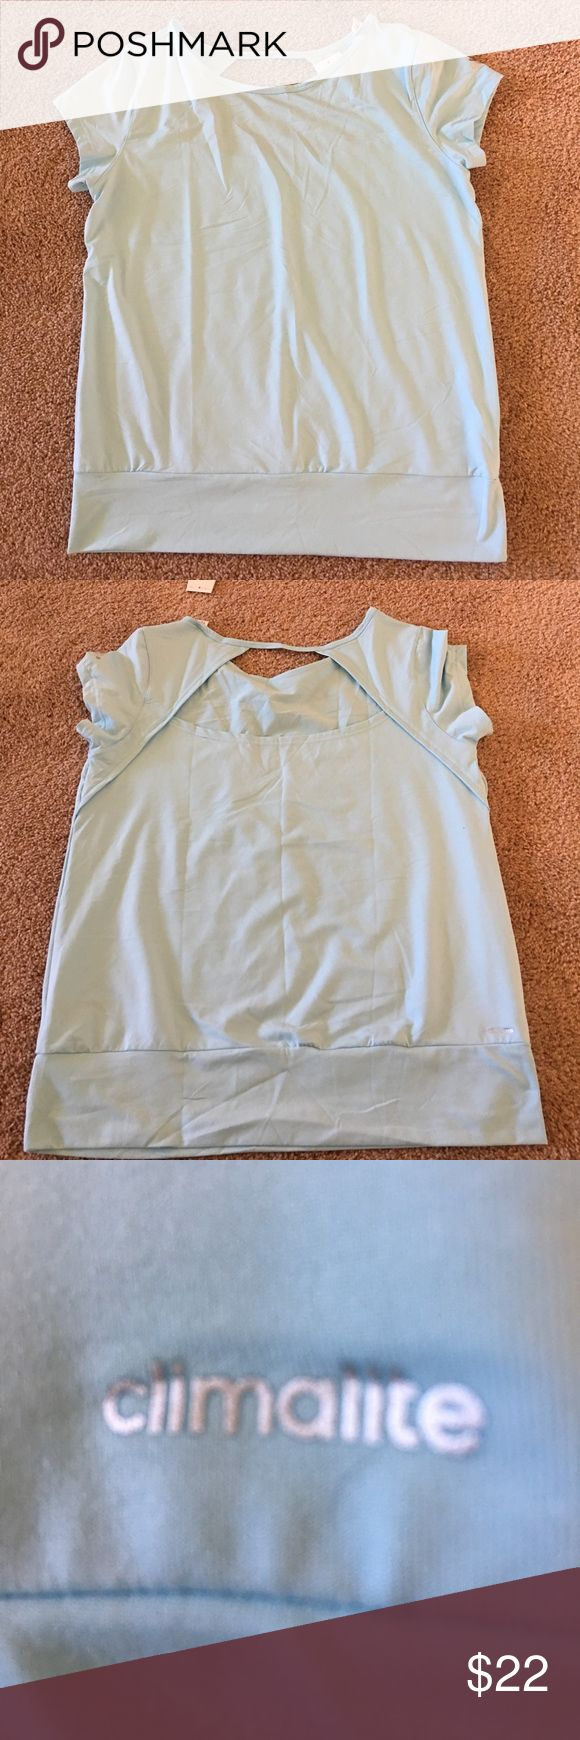 Adidas workout shirt Cutout top back, size L, elastic waist, color is represented best in photo #3 Adidas Tops Tees - Short Sleeve